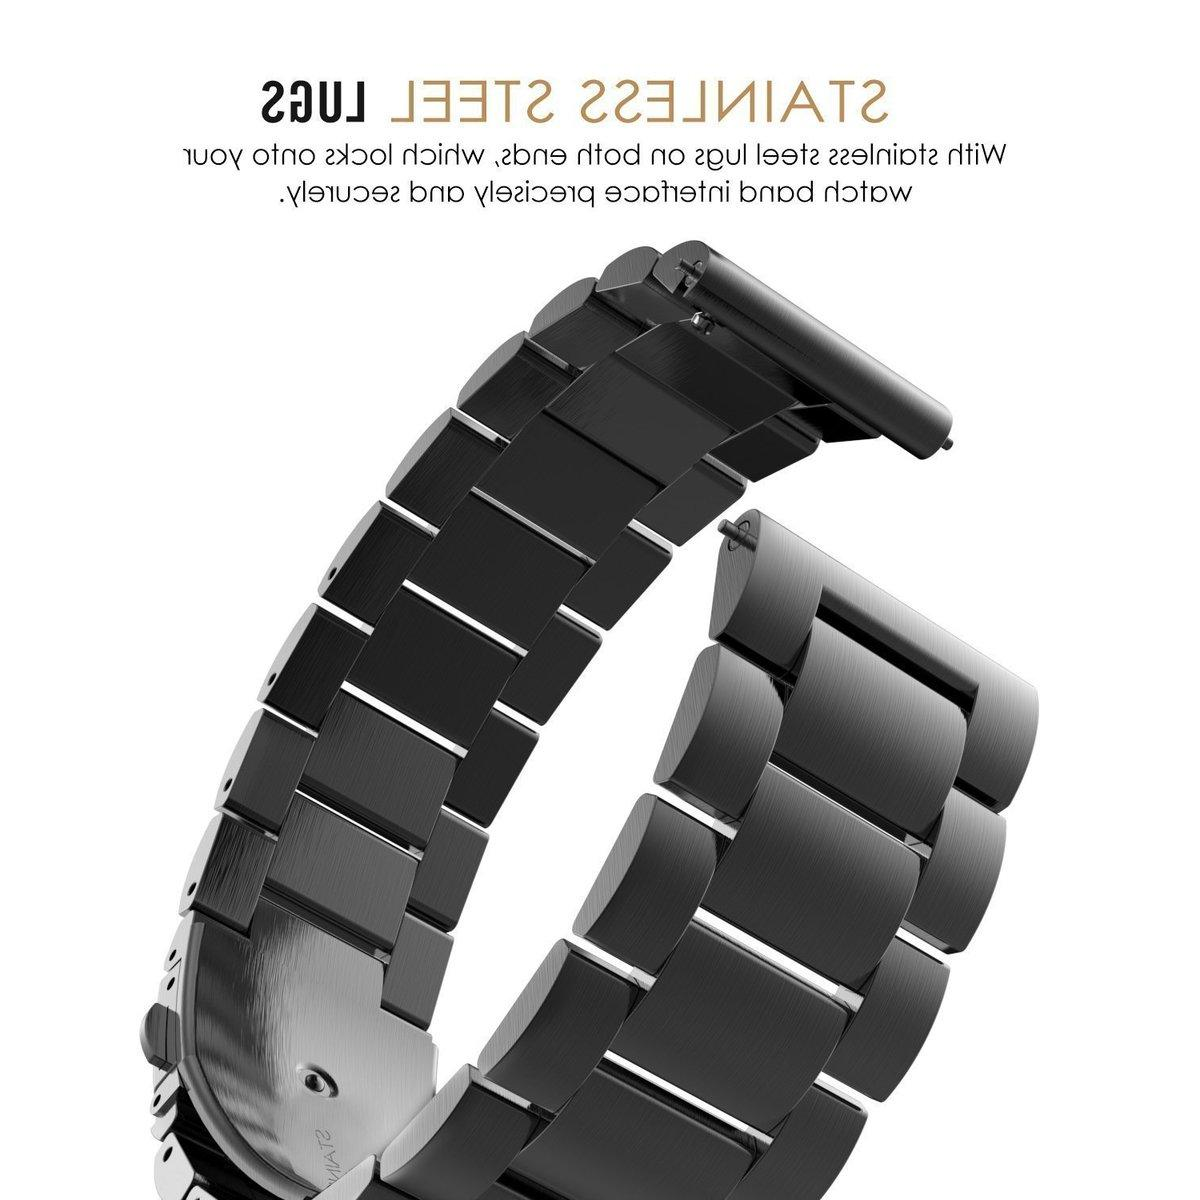 18mm Stainless Steel <font><b>Watch</b></font> Strap For S3 <font><b>Watch</b></font> bracelet For S2 Replacement